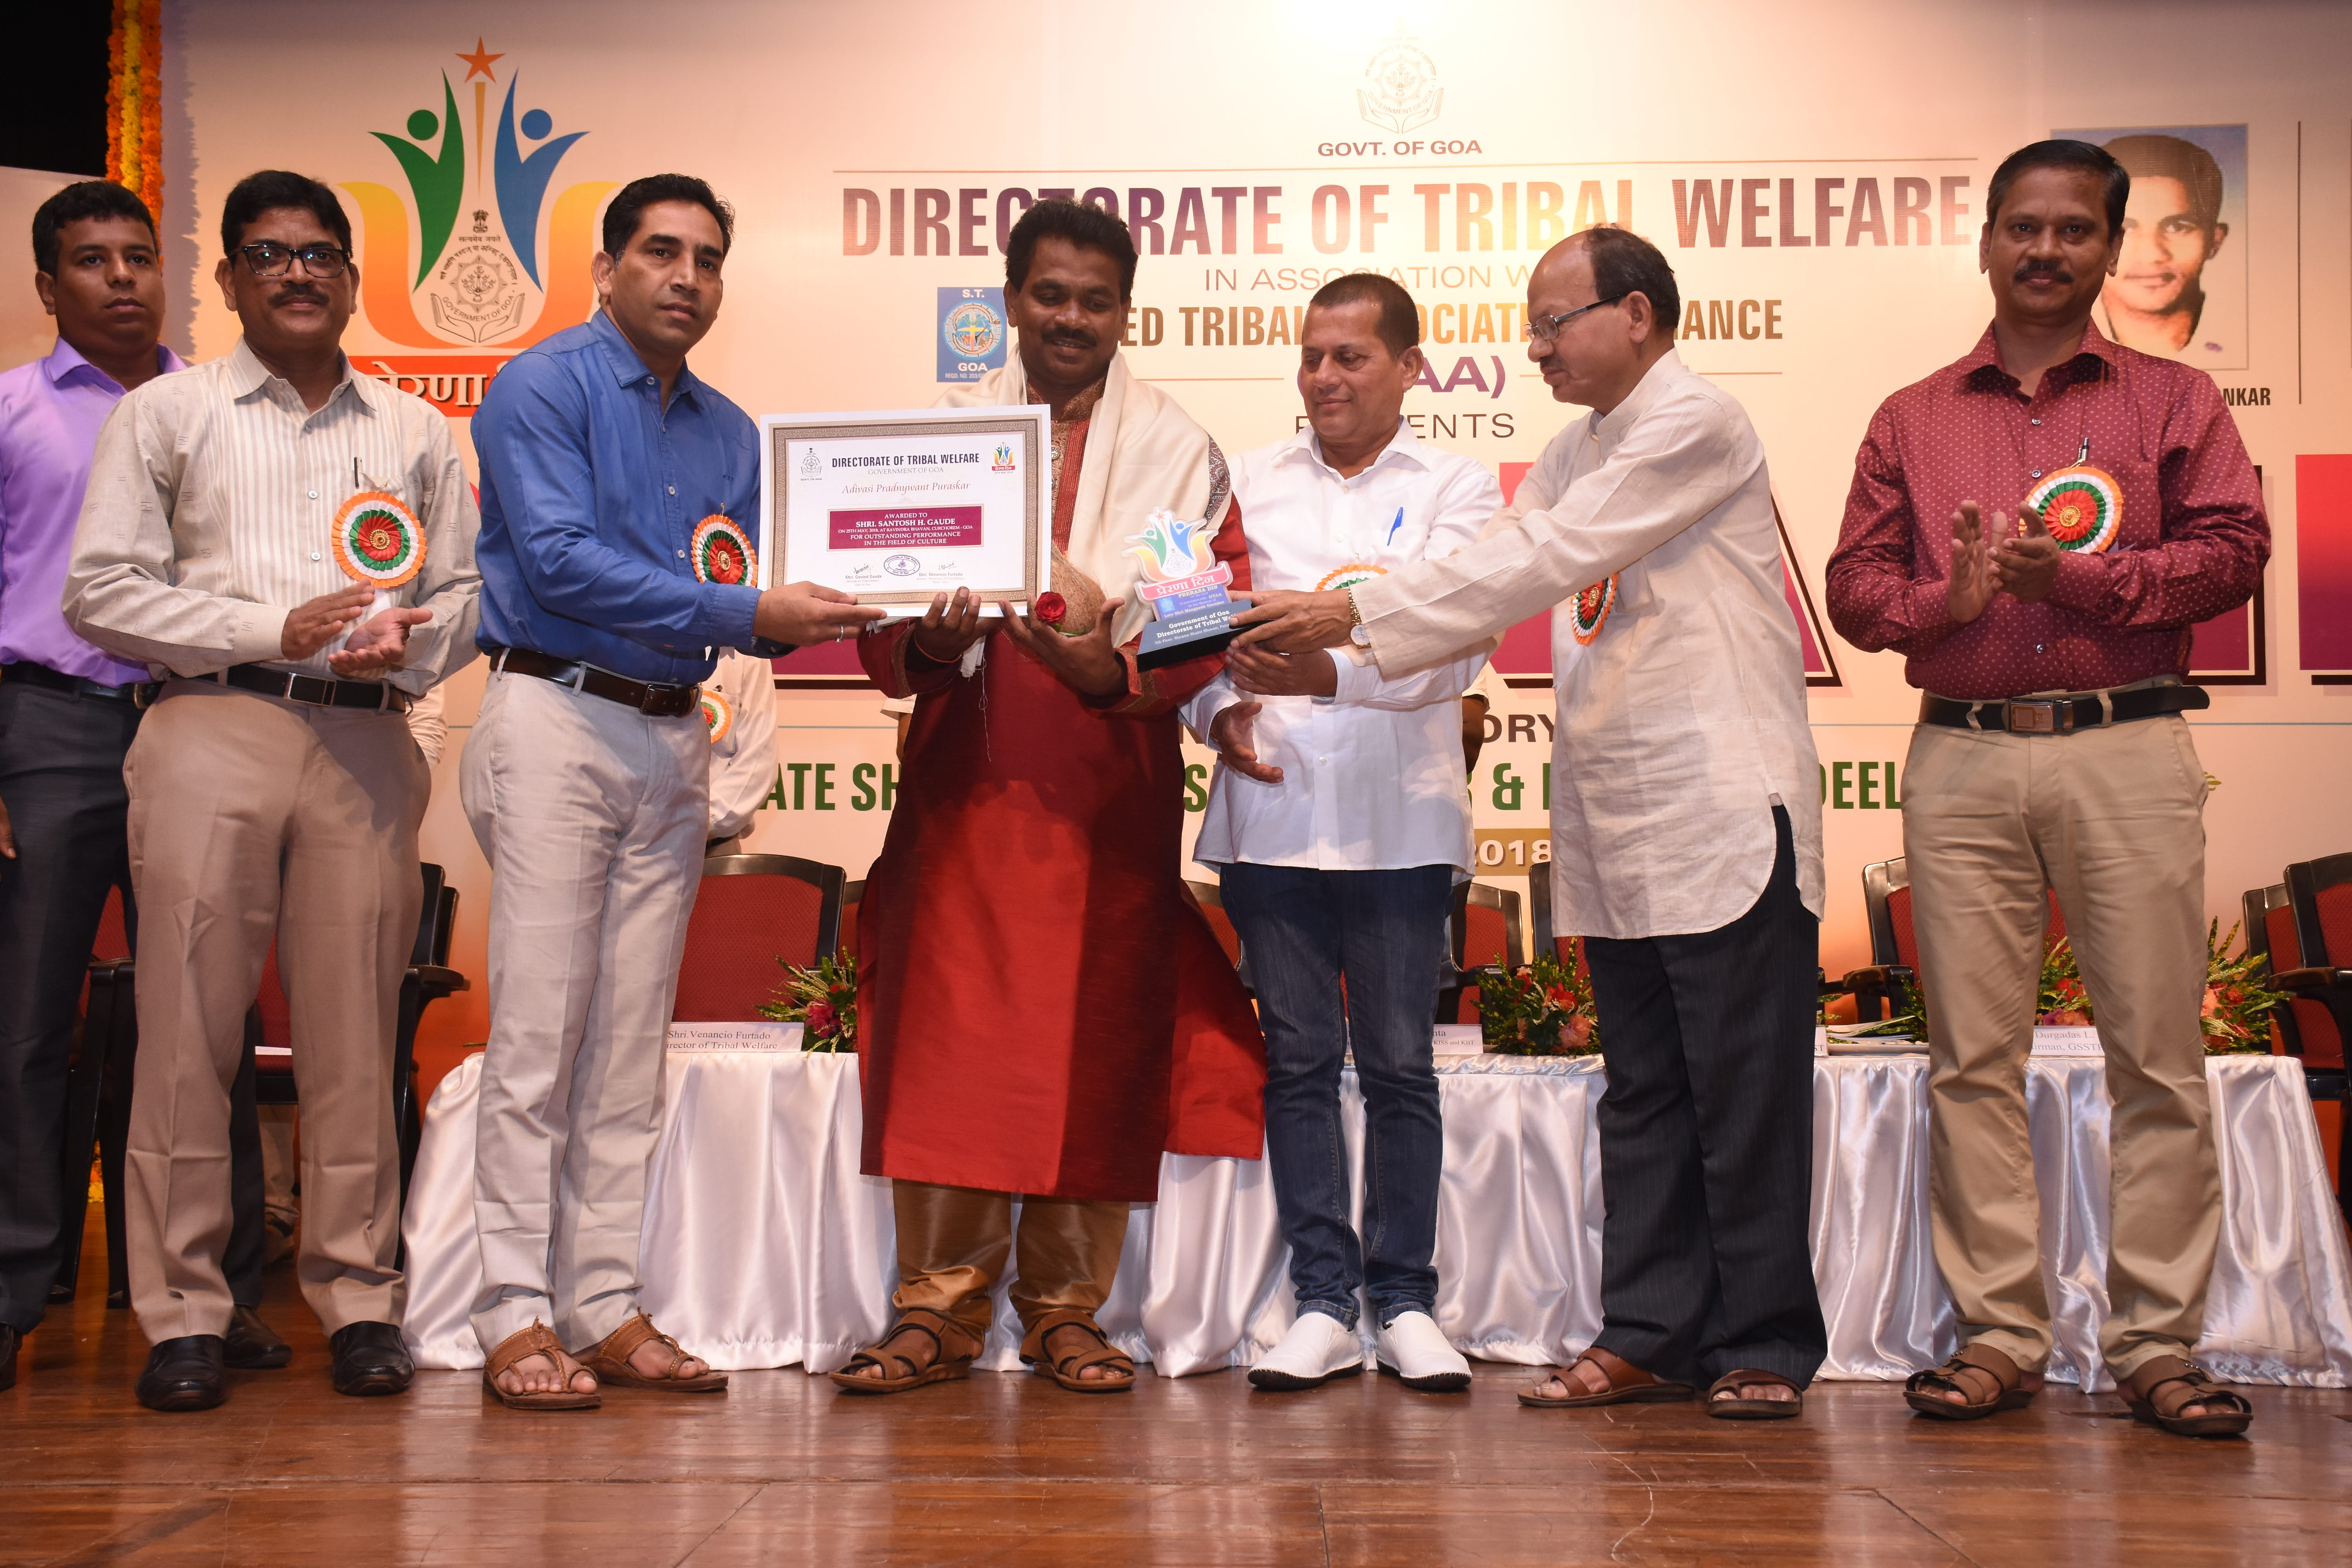 Adivasi Pradnyavant Puraskar awarded to Shri Santosh Gaude in Cultural field